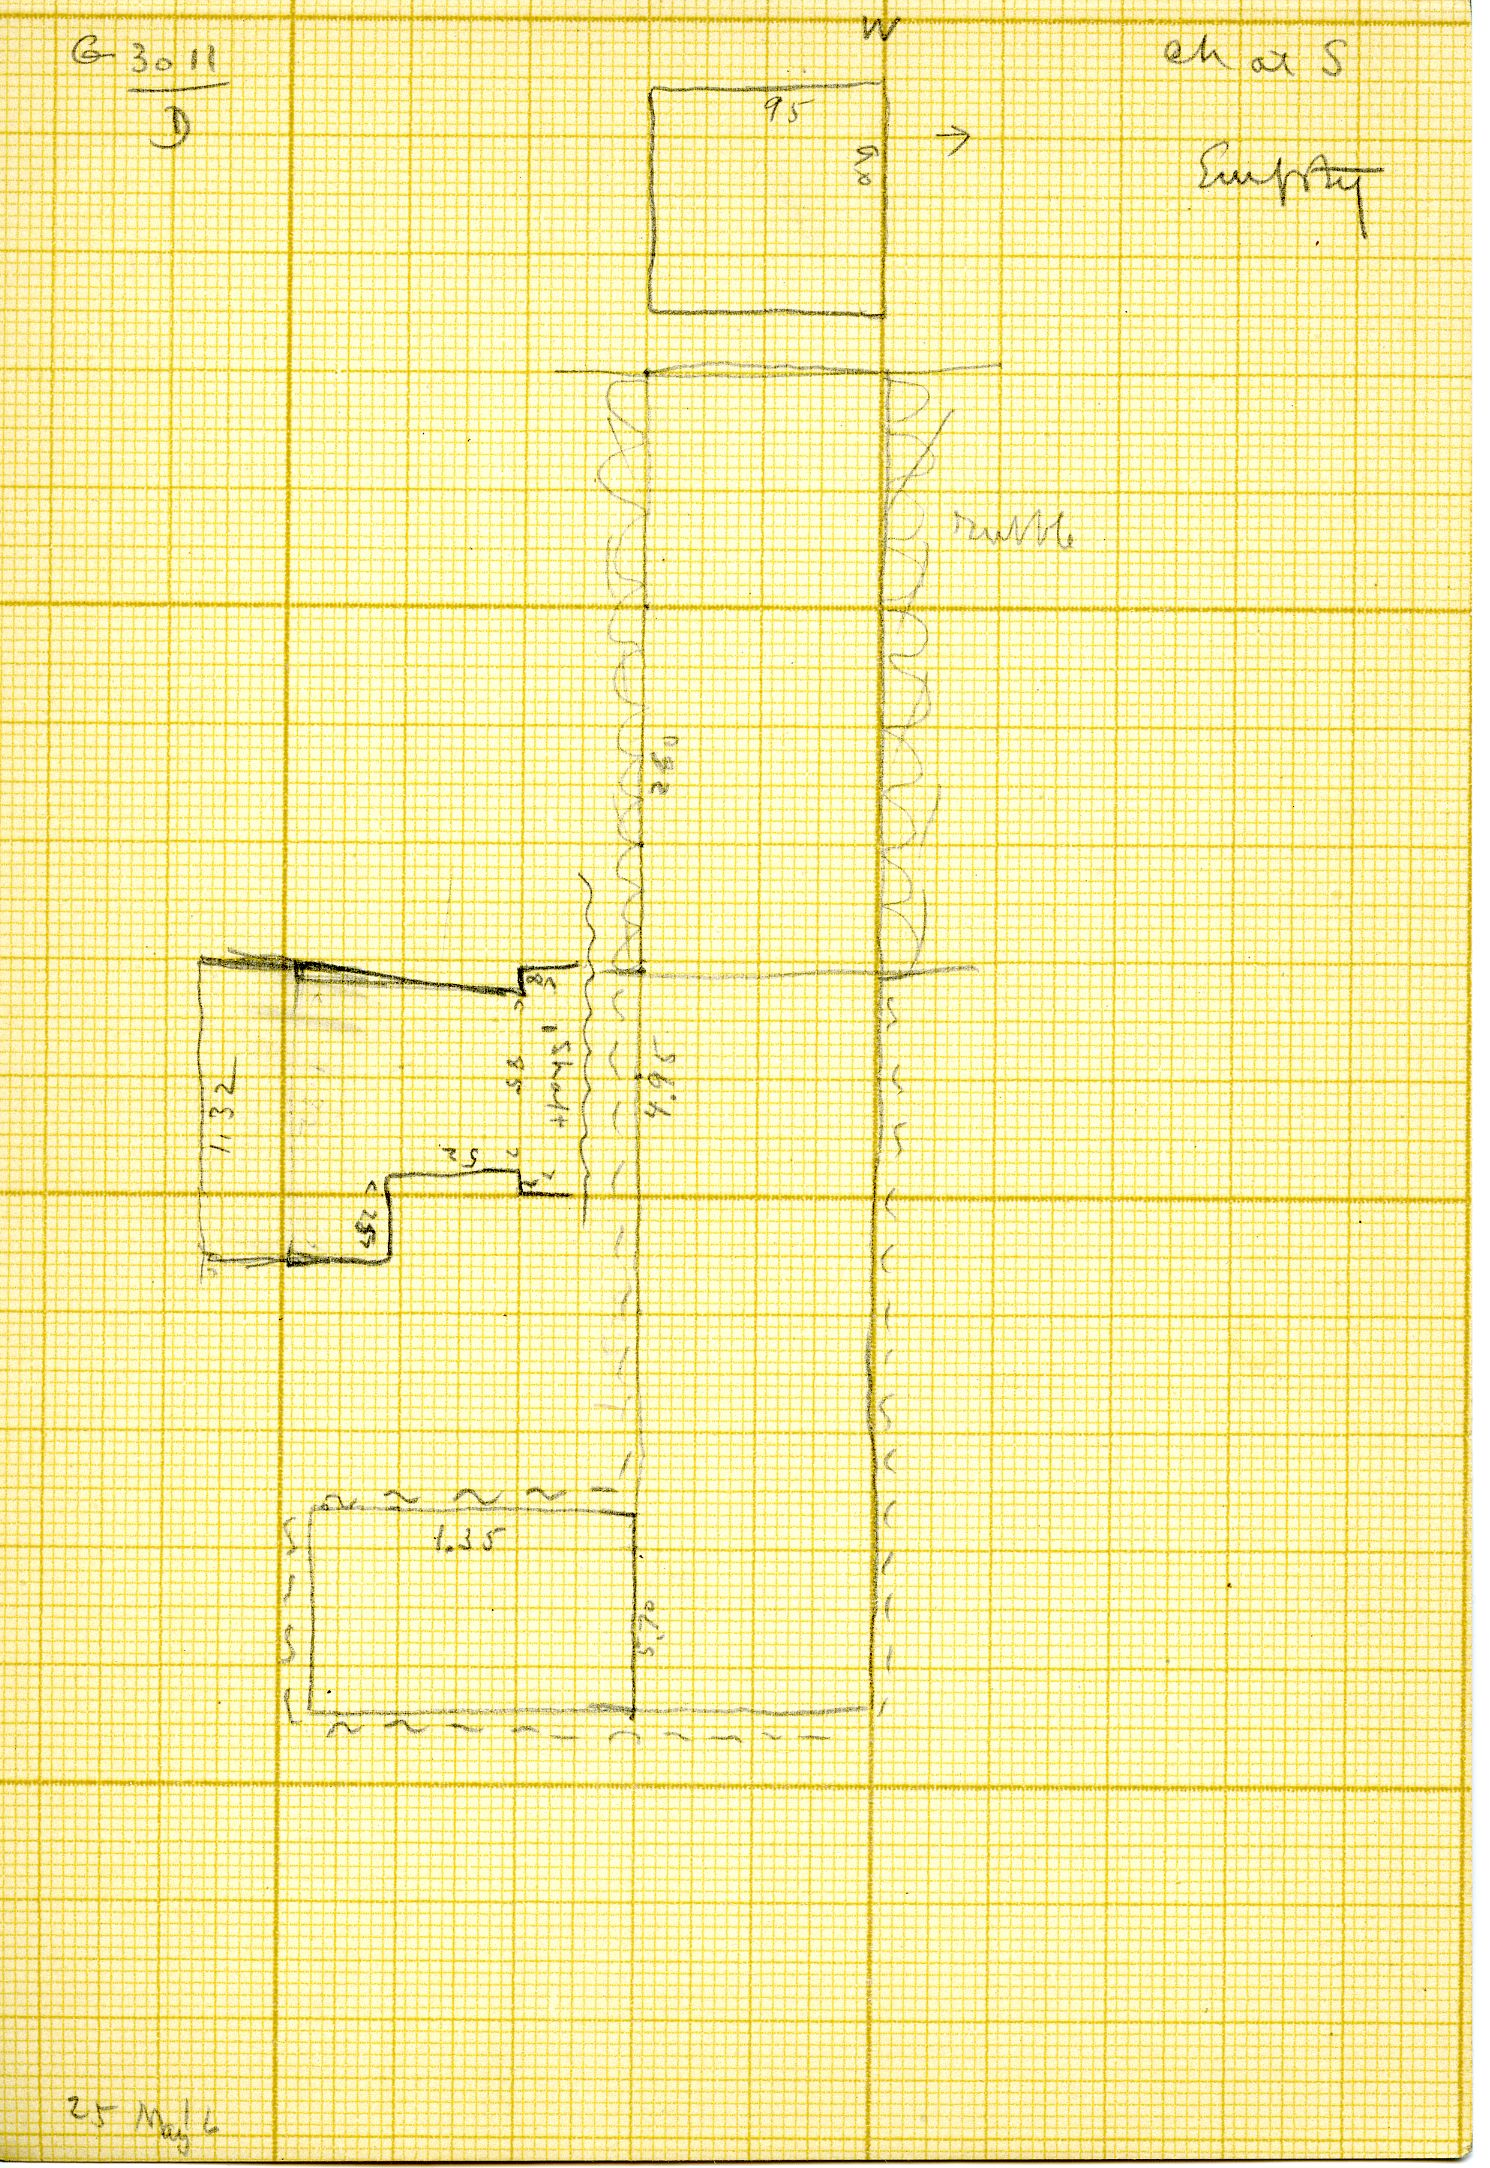 Maps and plans: G 3011, Shaft D